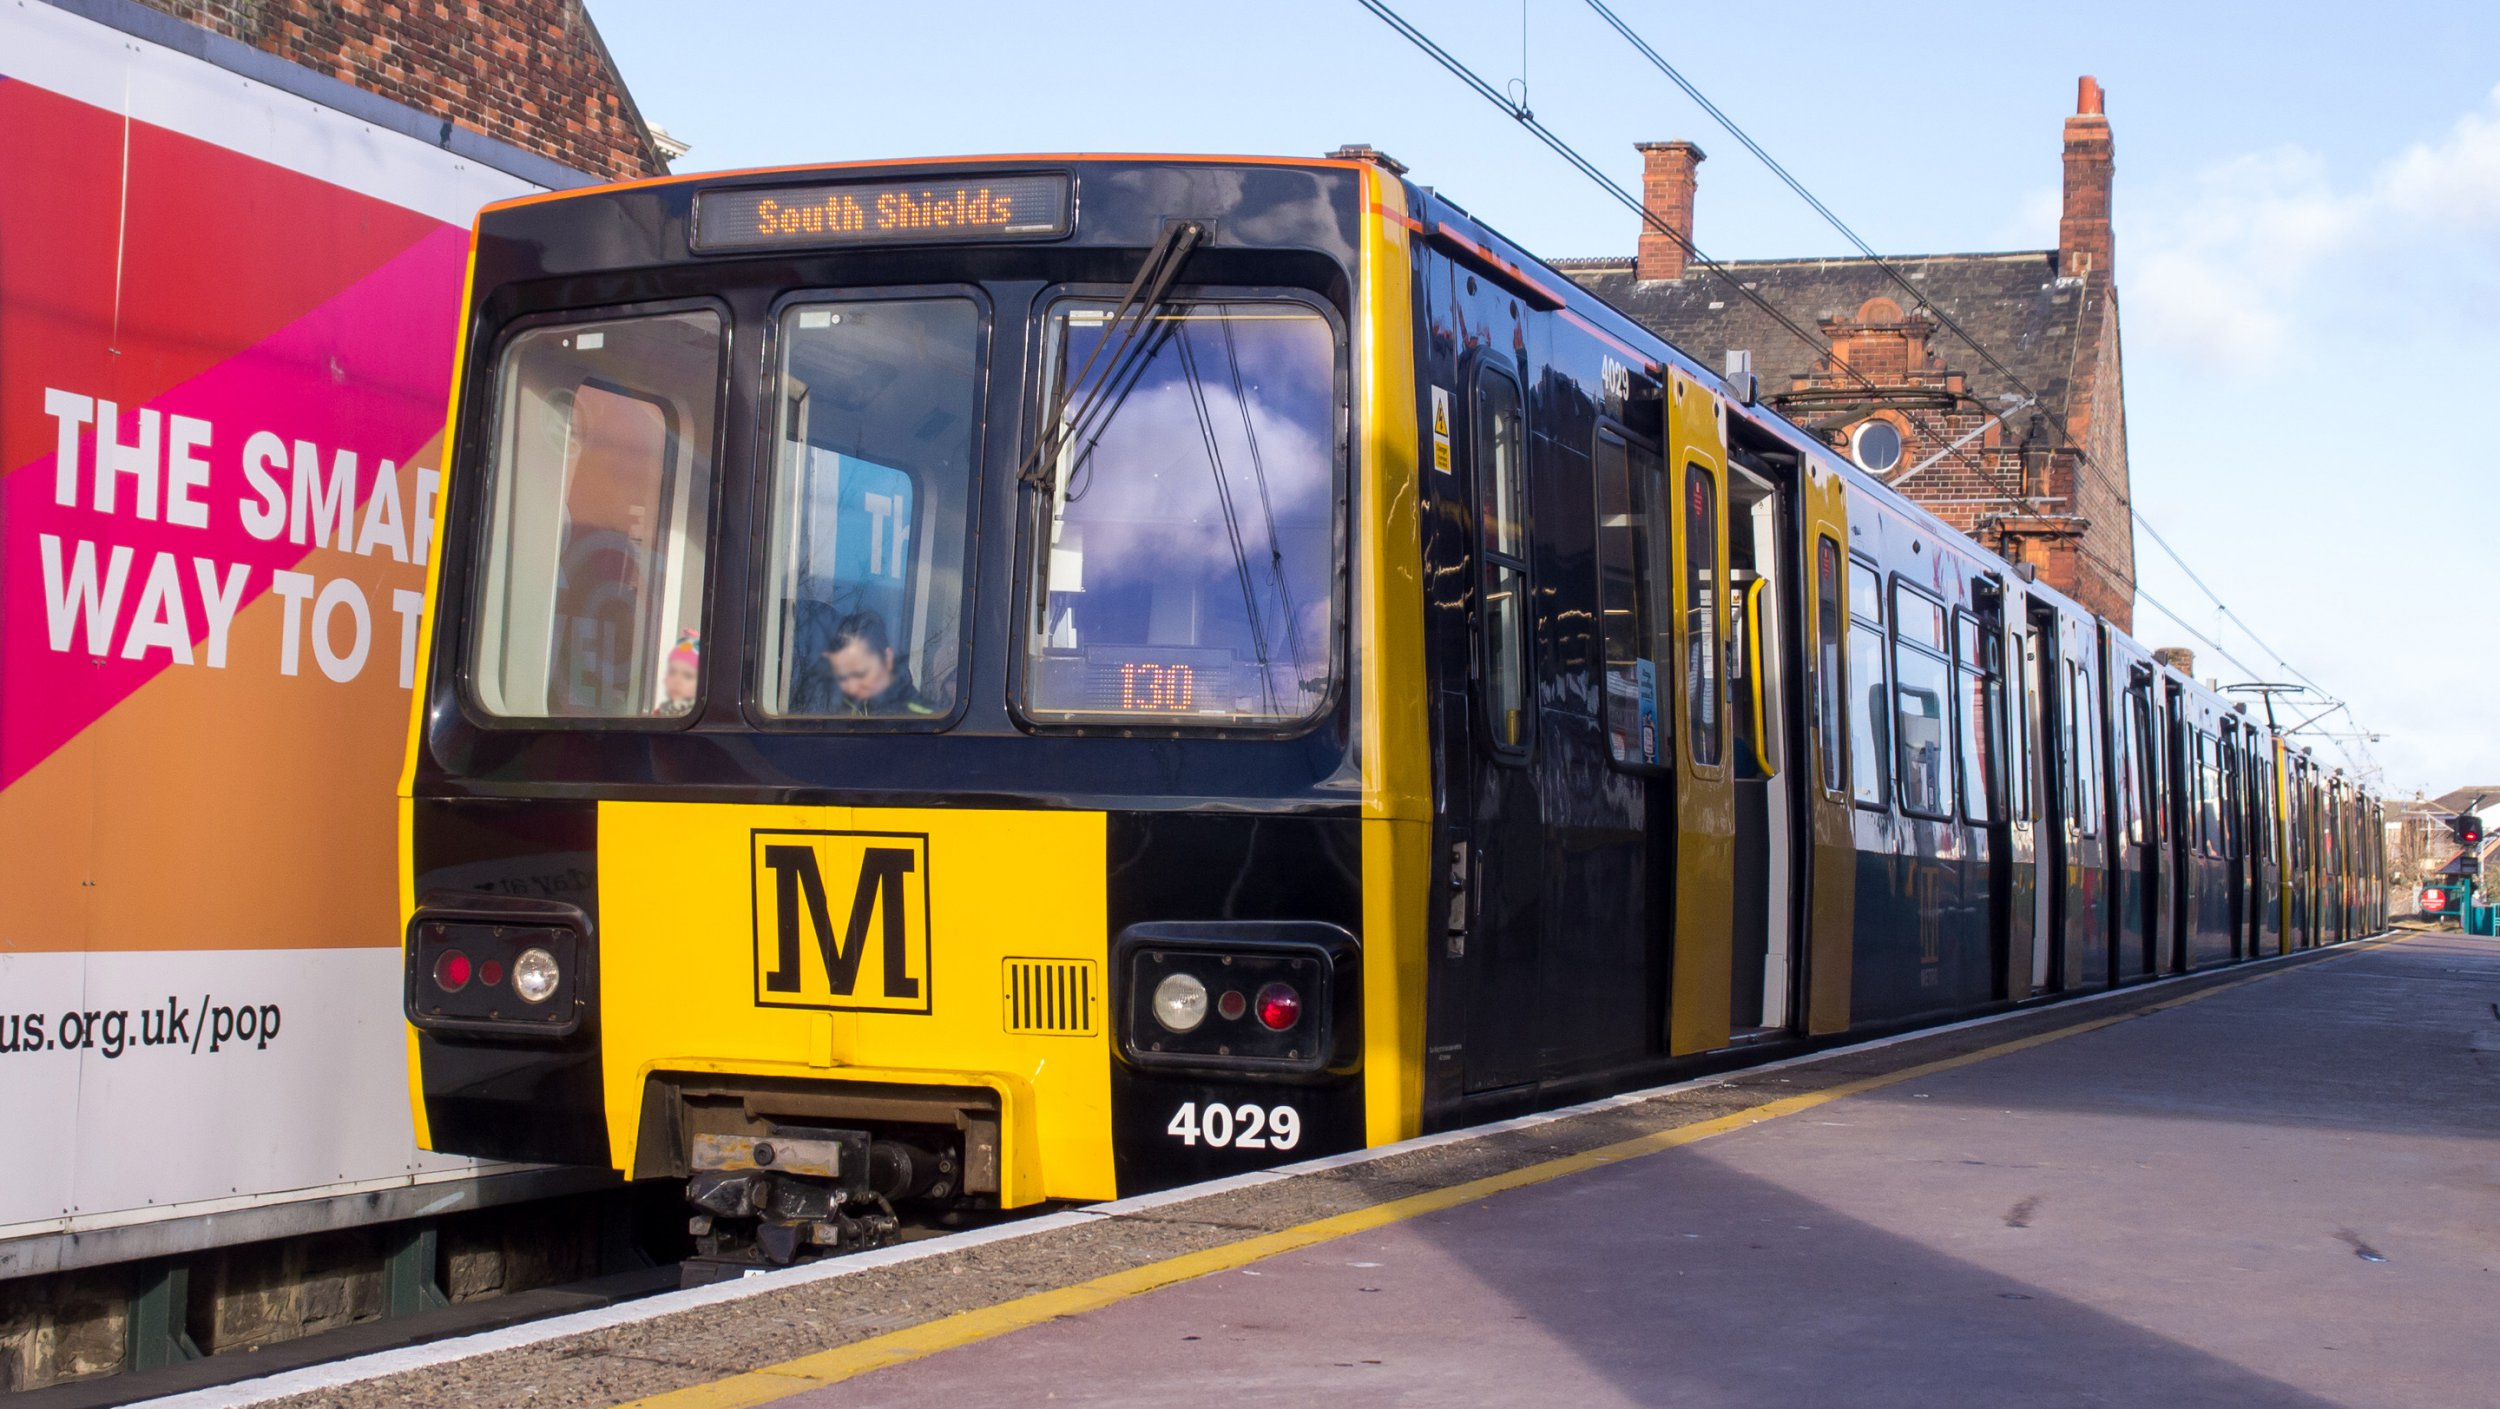 Train service cancelled after commuter does a poo on the seats